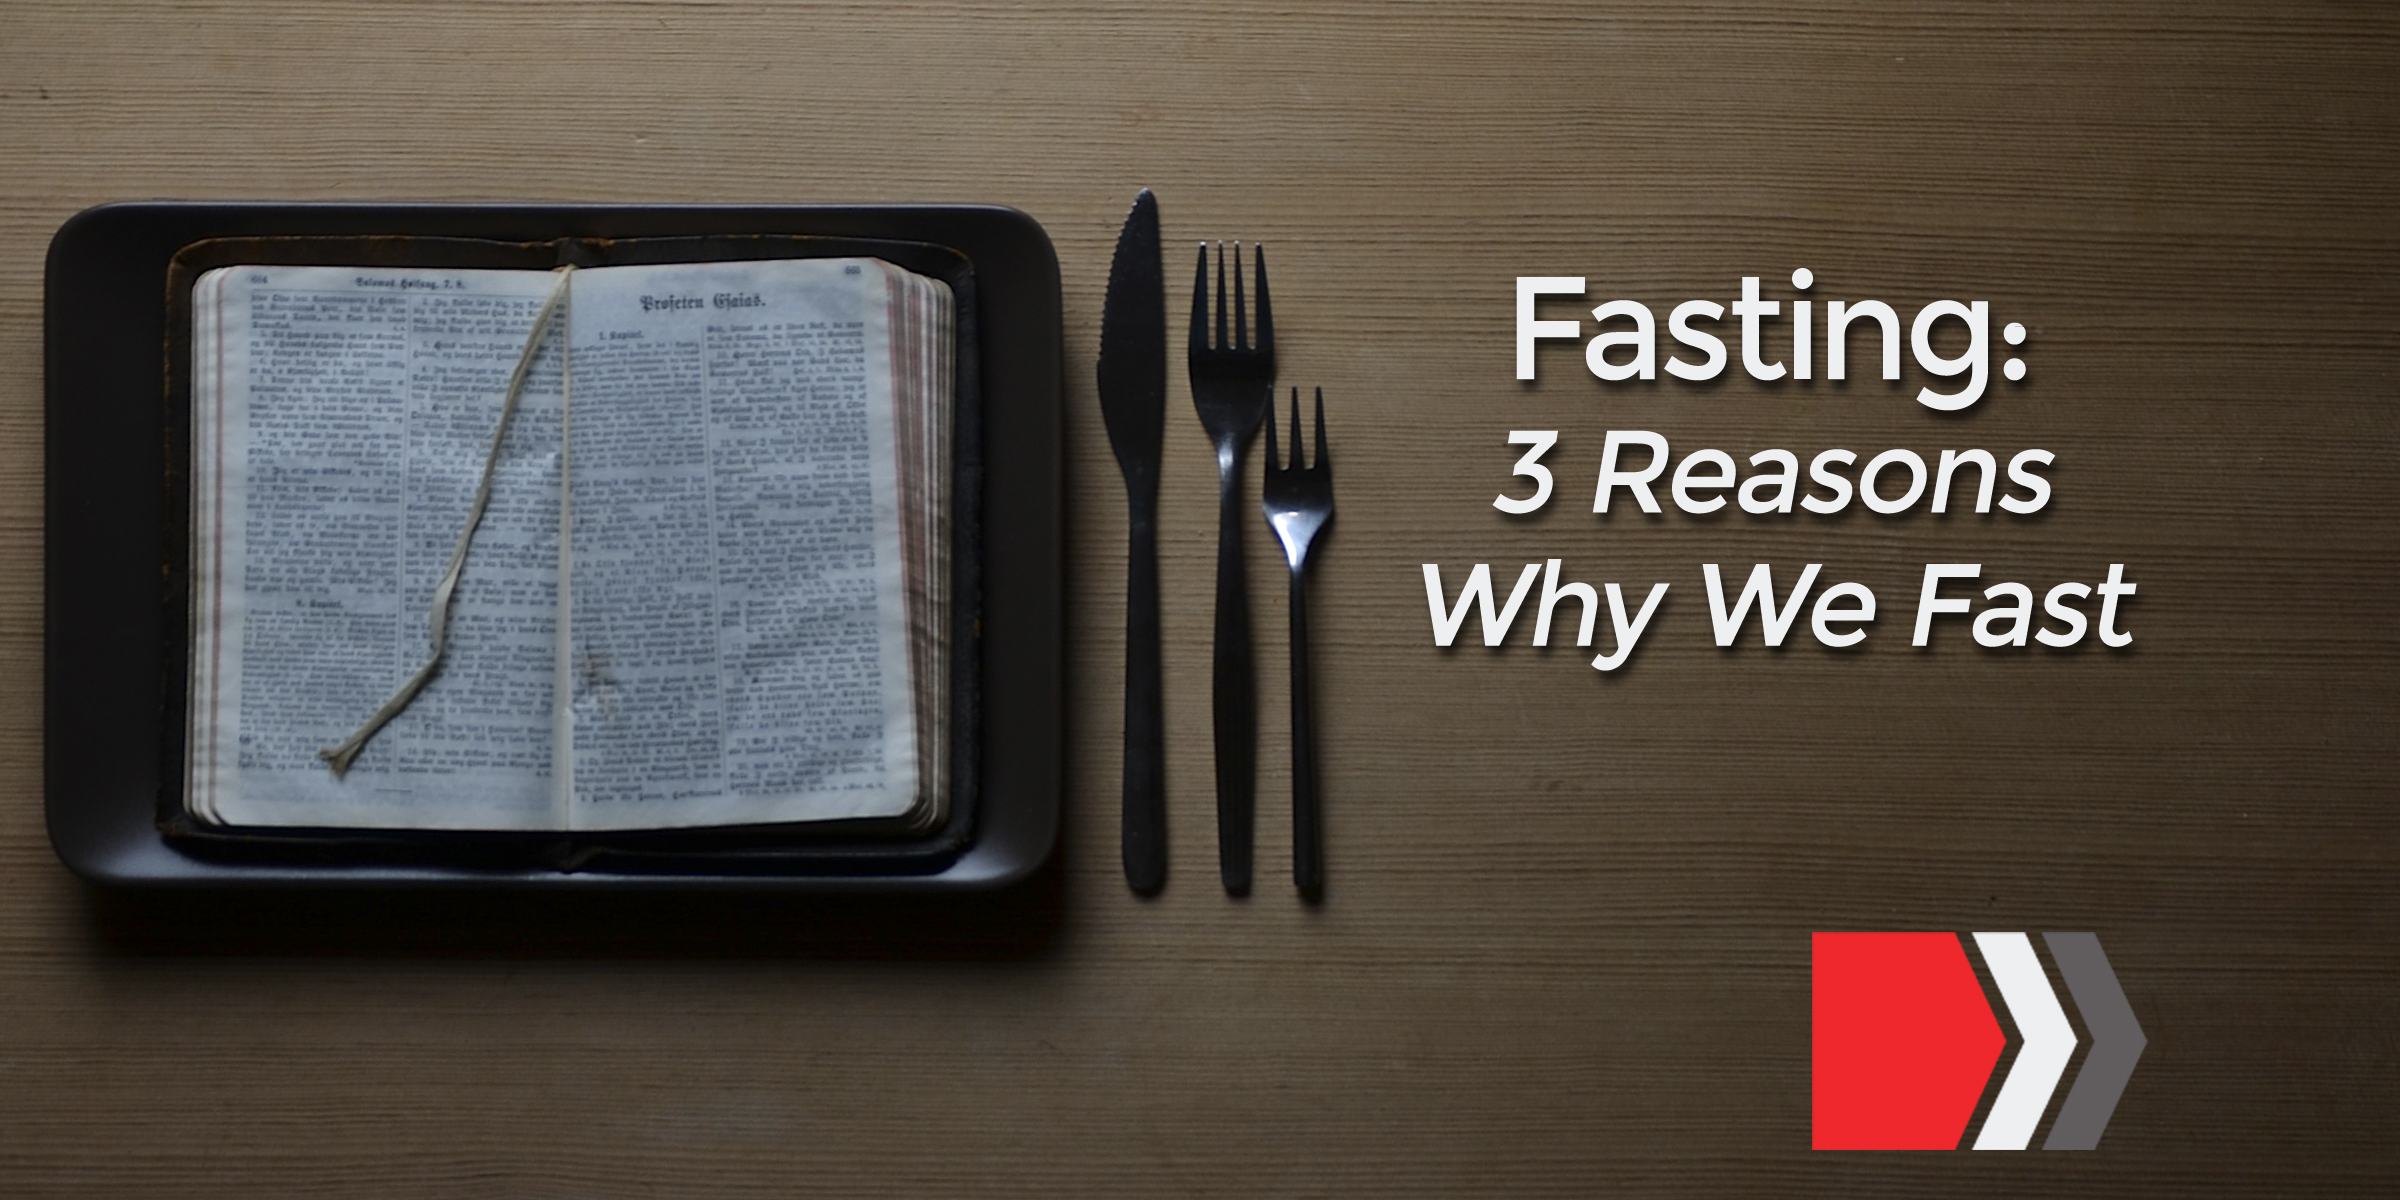 Fasting: 3 Reasons Why We Fast